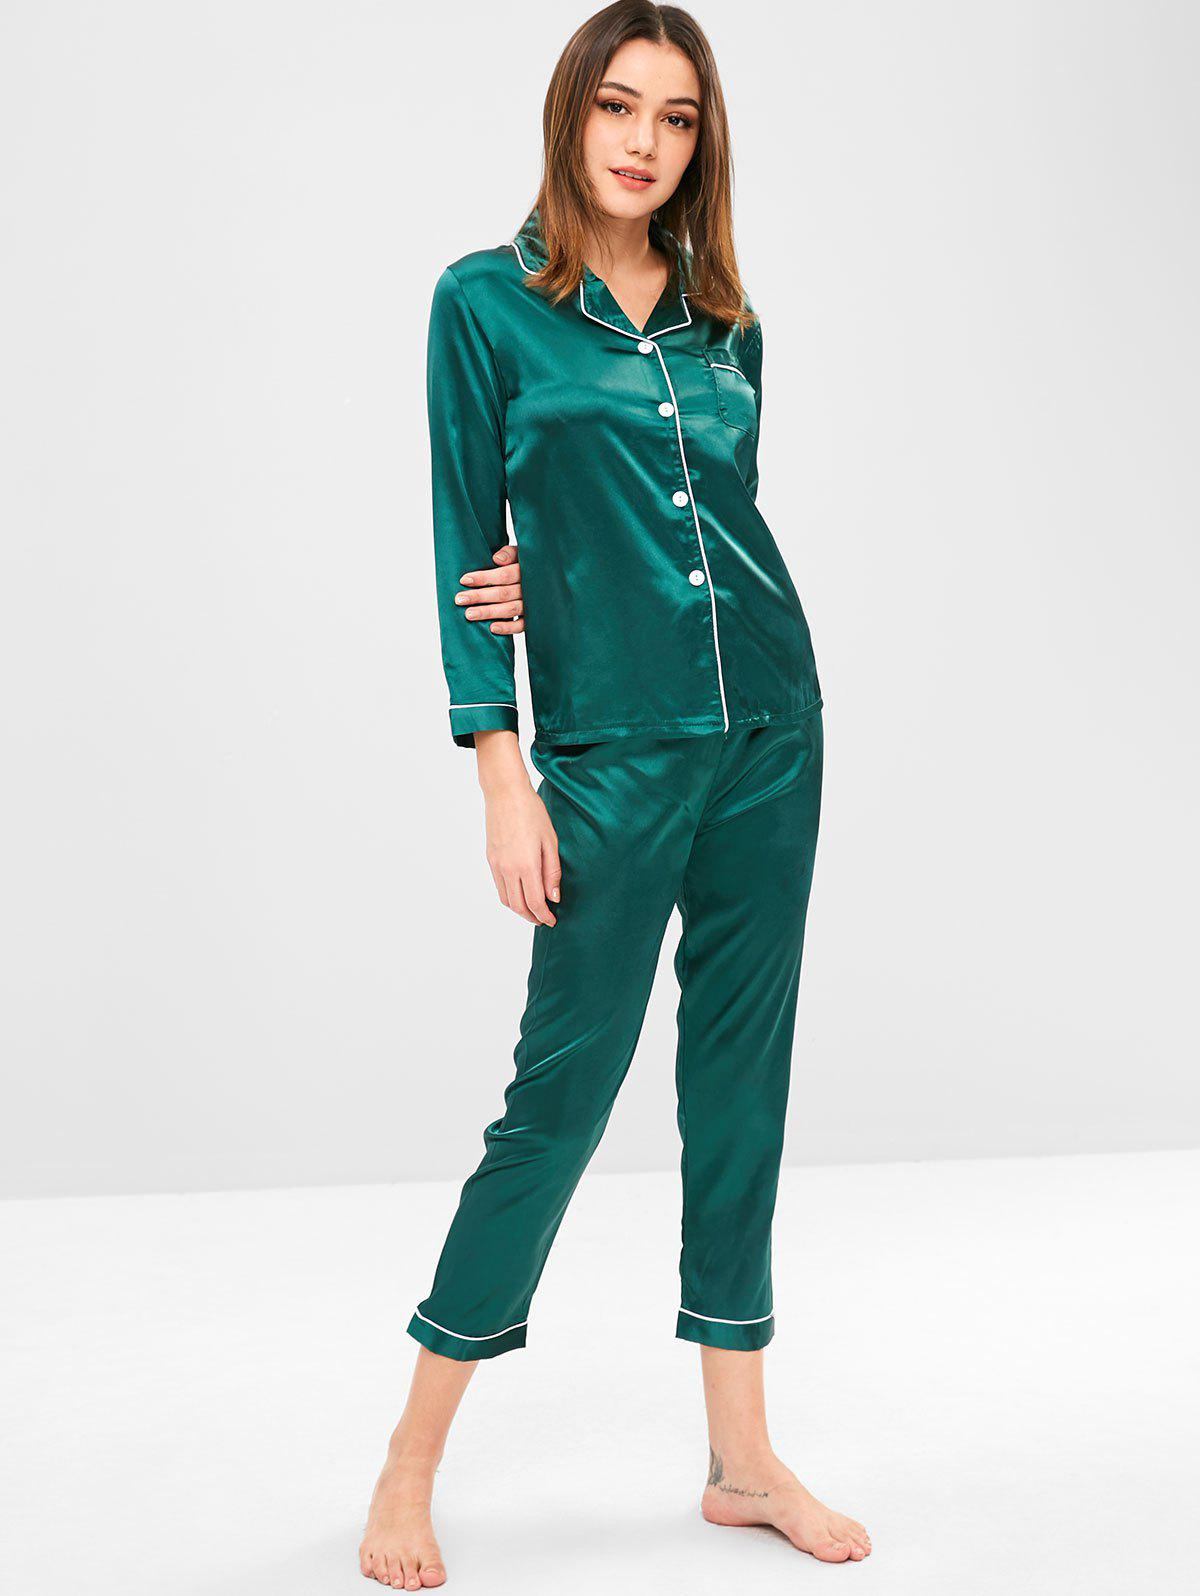 Satin Pocket Shirt and Pants Pajama Set